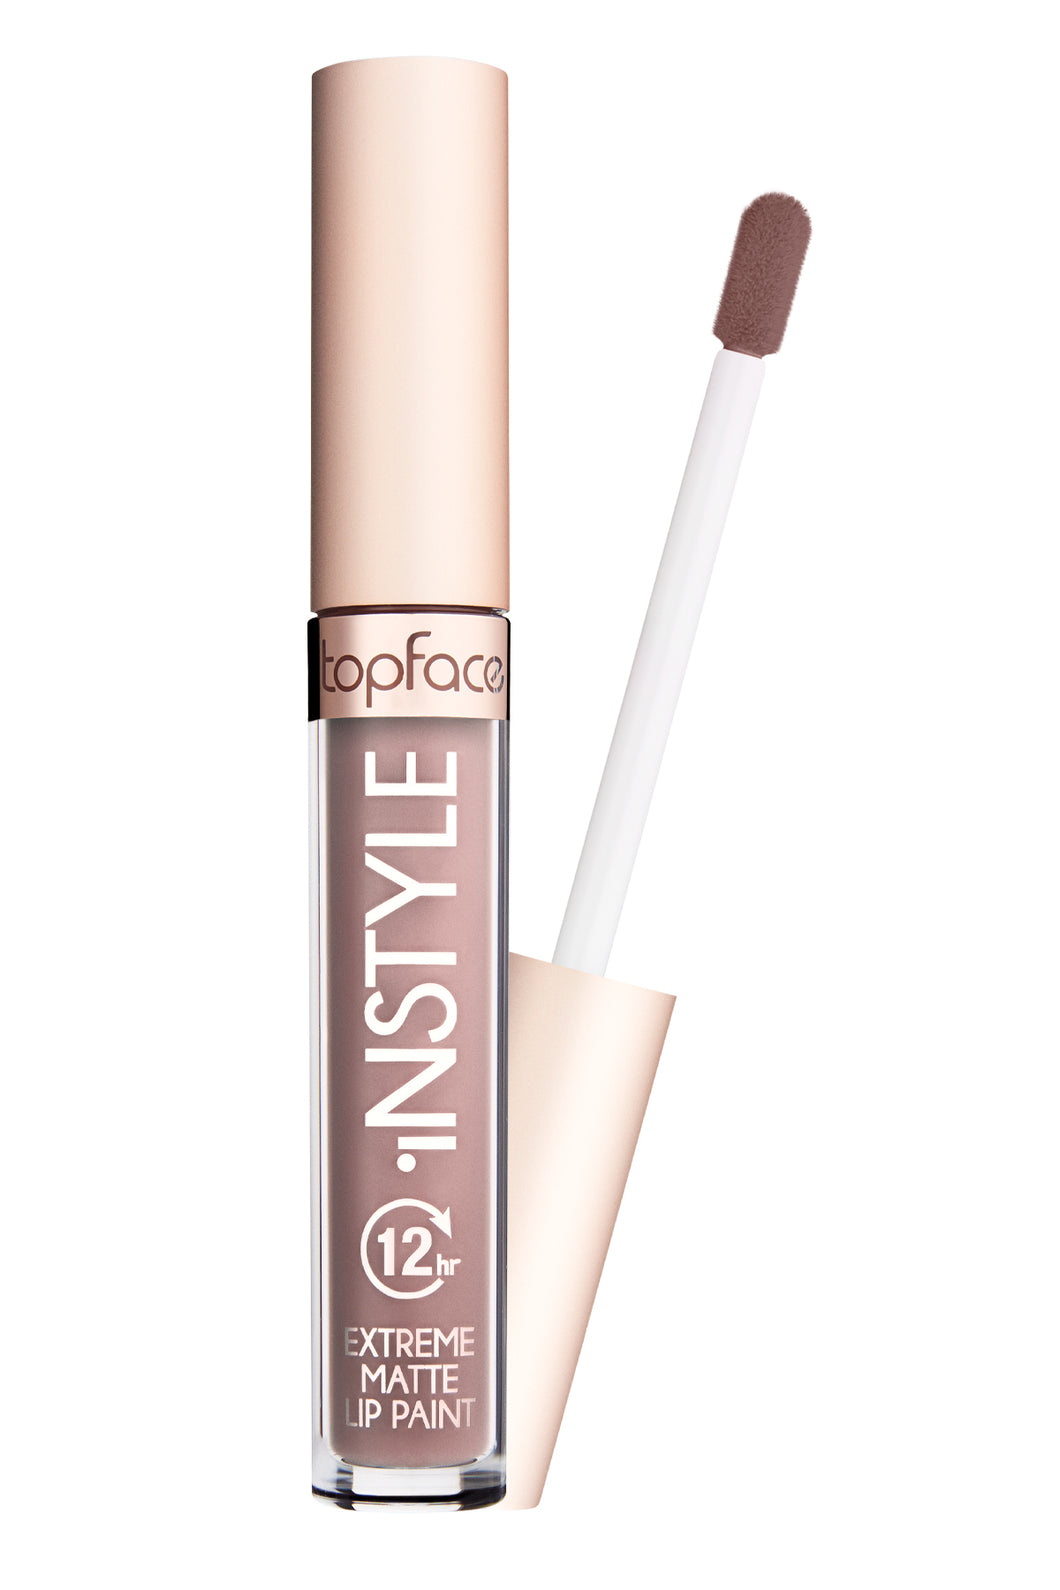 Topface - Instyle Extreme Matte Lippaint - 006